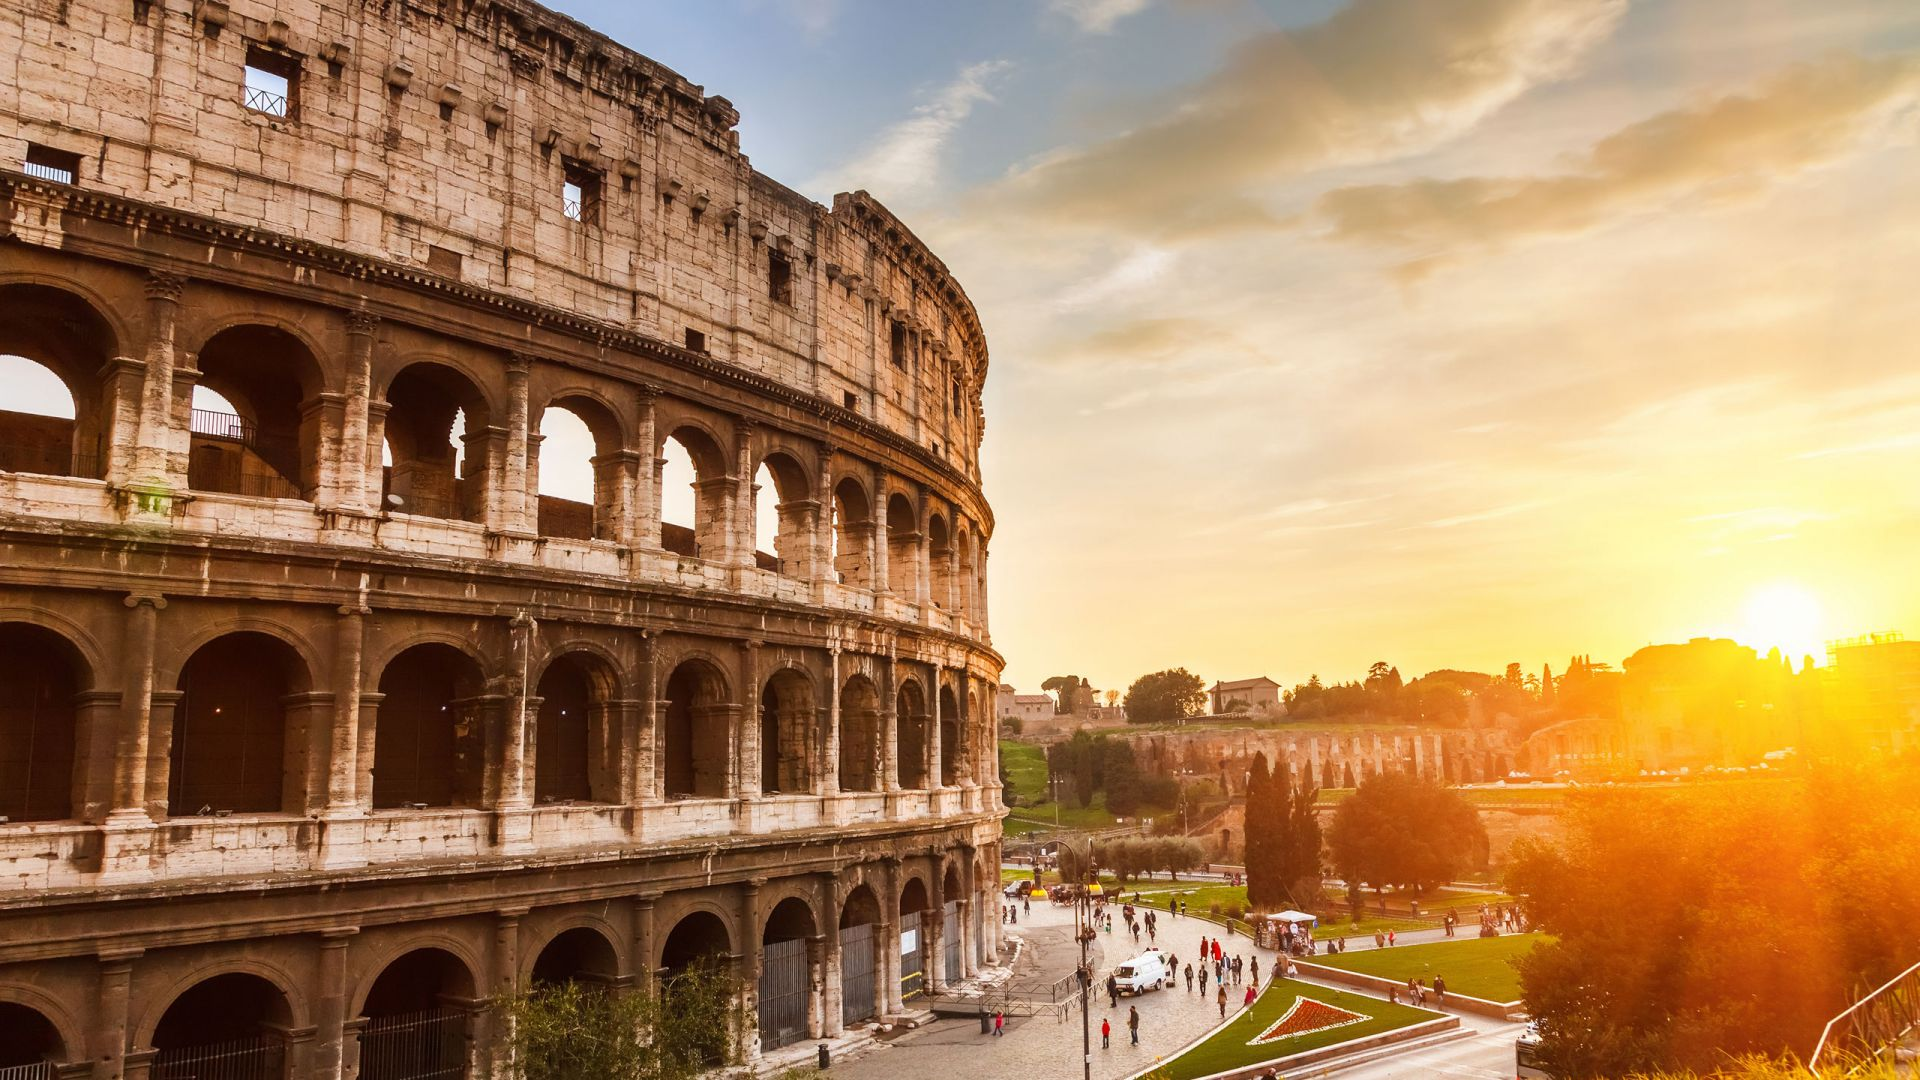 San-Carlo-Suite-Rome-colosseo